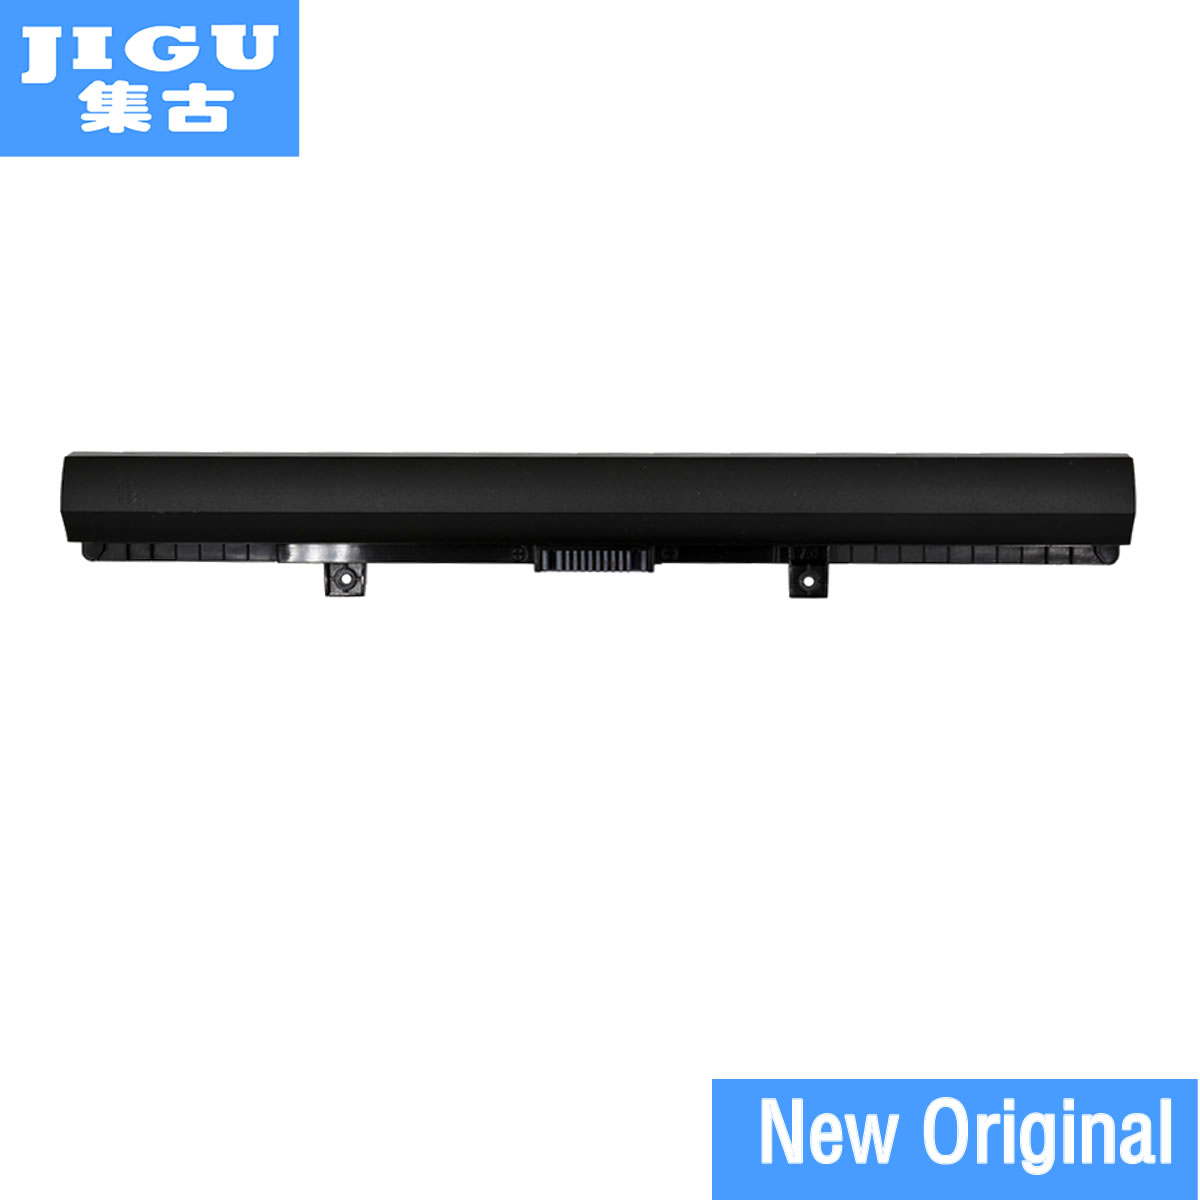 JIGU Genuine Original Battery For TOSHIBA For Satellite C50 C55 C55D C55T L55 L55D L55T PA5185U PA5185U-1BRS Series 2800MAH free shipping v000325140 for toshiba satellite c55 c55d c55t c55dt c55t a laptop motherboard all functions 100